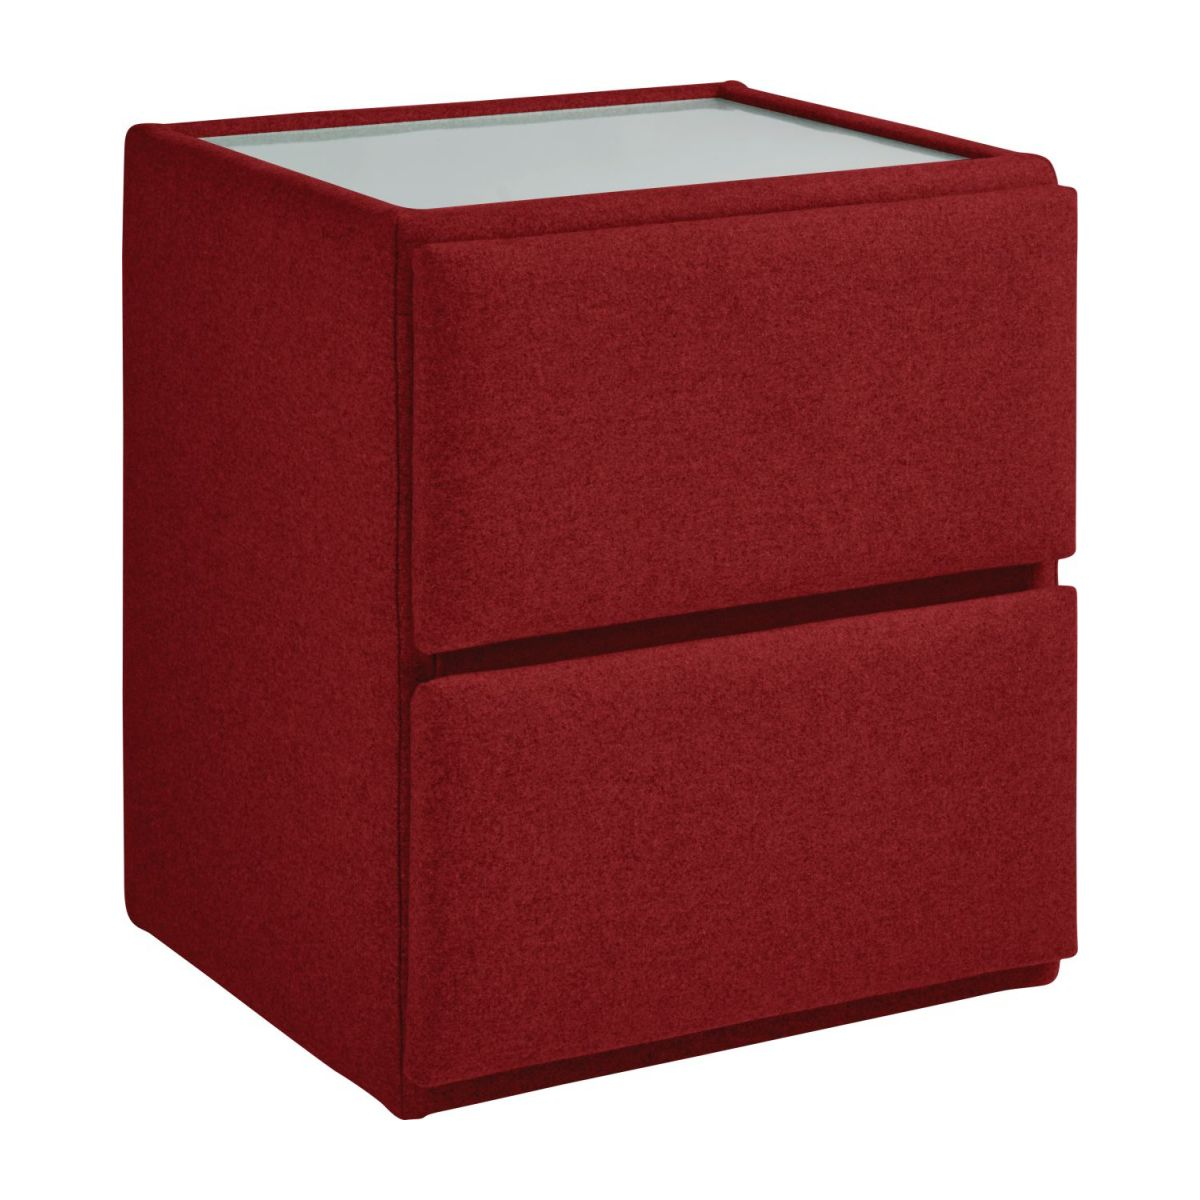 Chevet Rouge Amazon Chevet En Feutrine Rouge Habitat